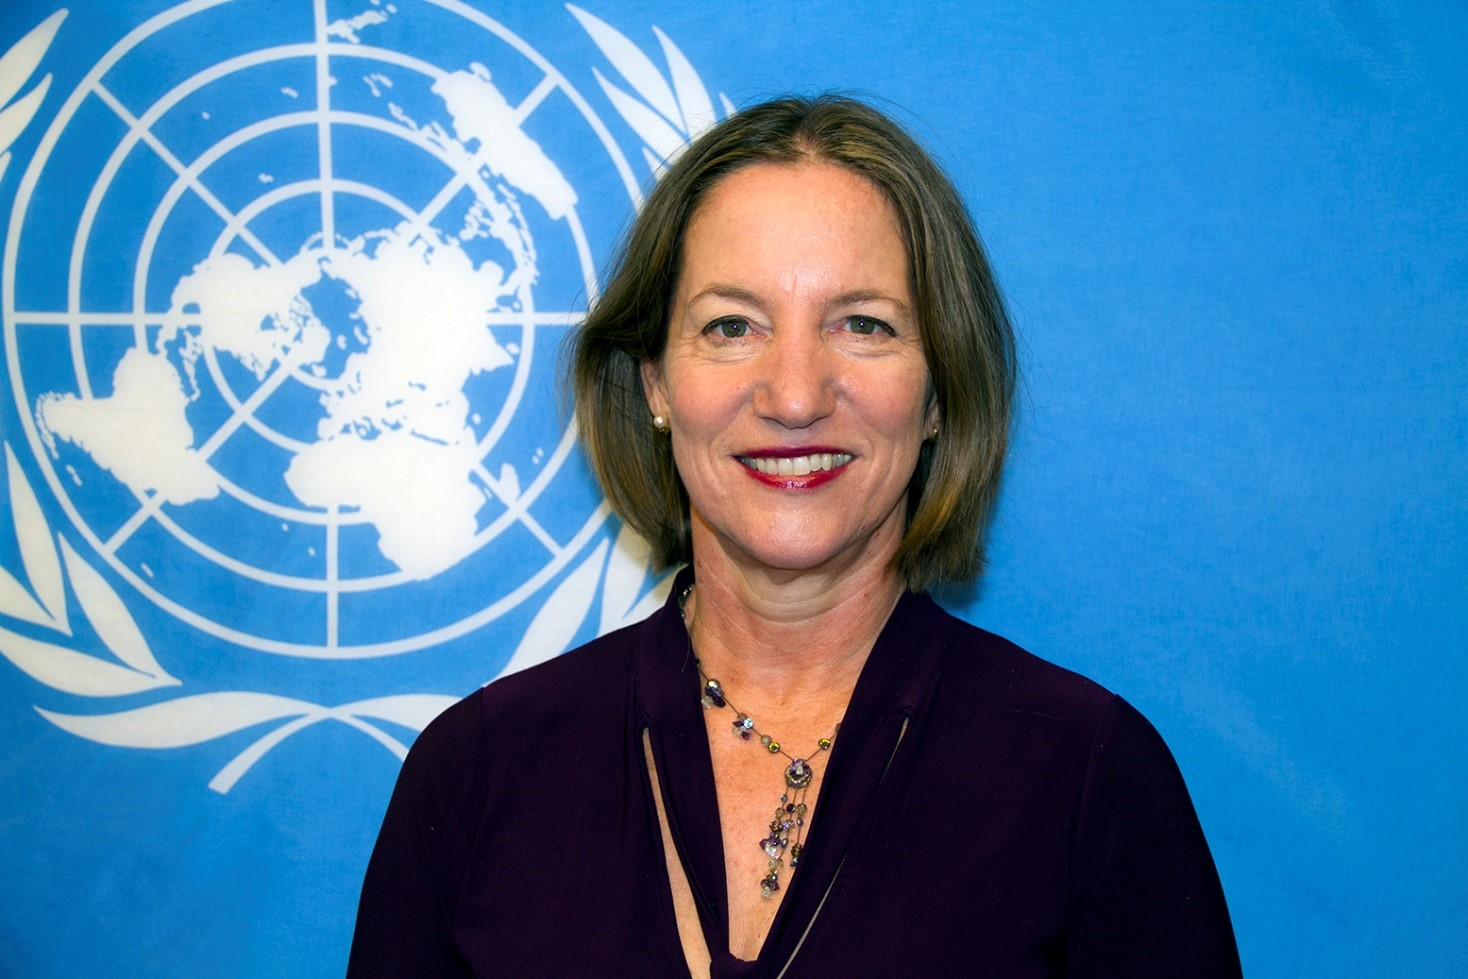 Lisa  Filipetto Cheffe du Bureau d'appui des Nations Unies en Somalie